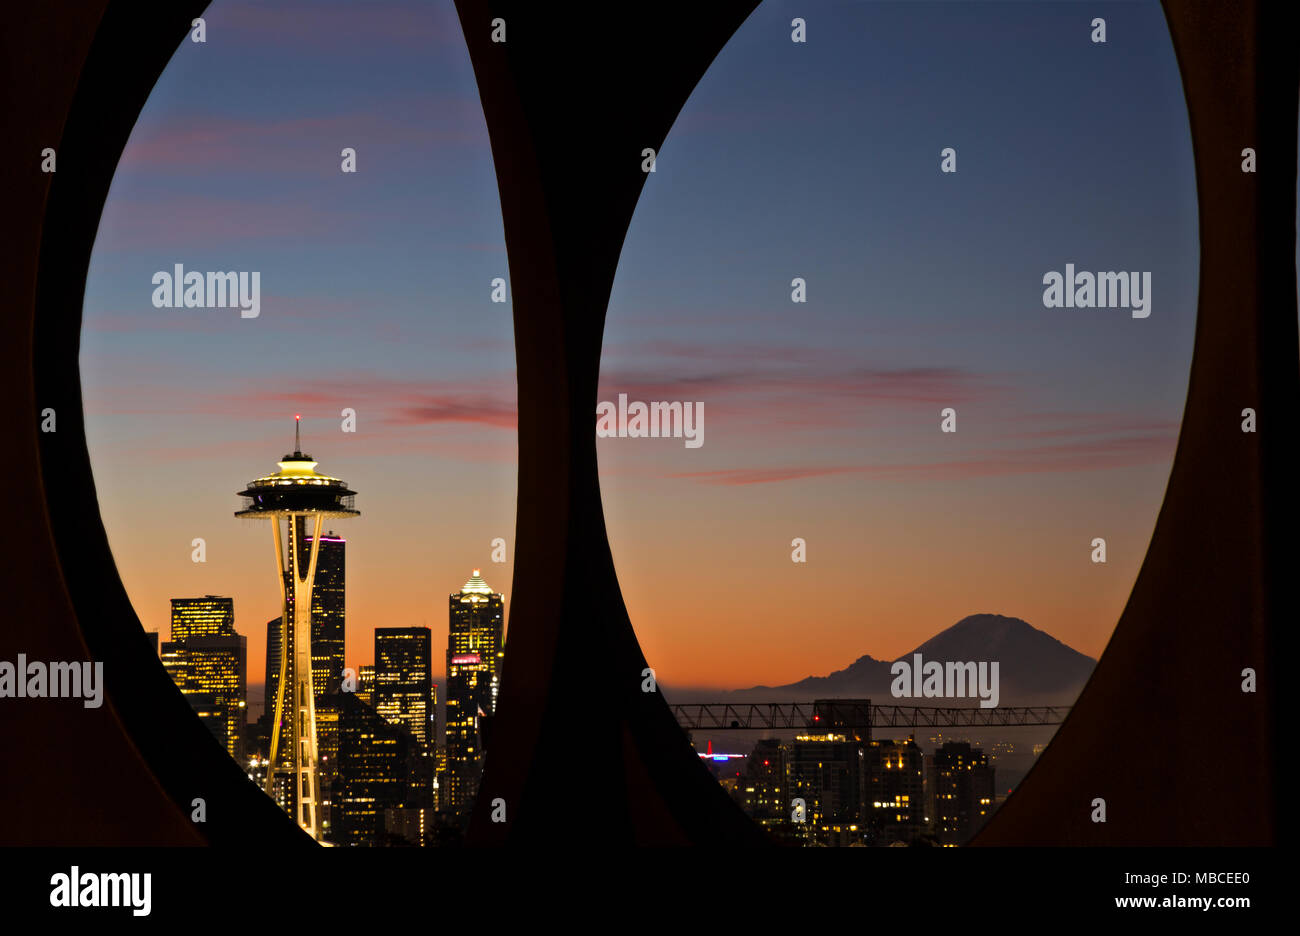 WA15080-00...WASHINGTON - Sunrise over Seattle and Mount Rainier viewed through the Changing Form sculpture located in Kerry Park on Queen Anne Hill. - Stock Image